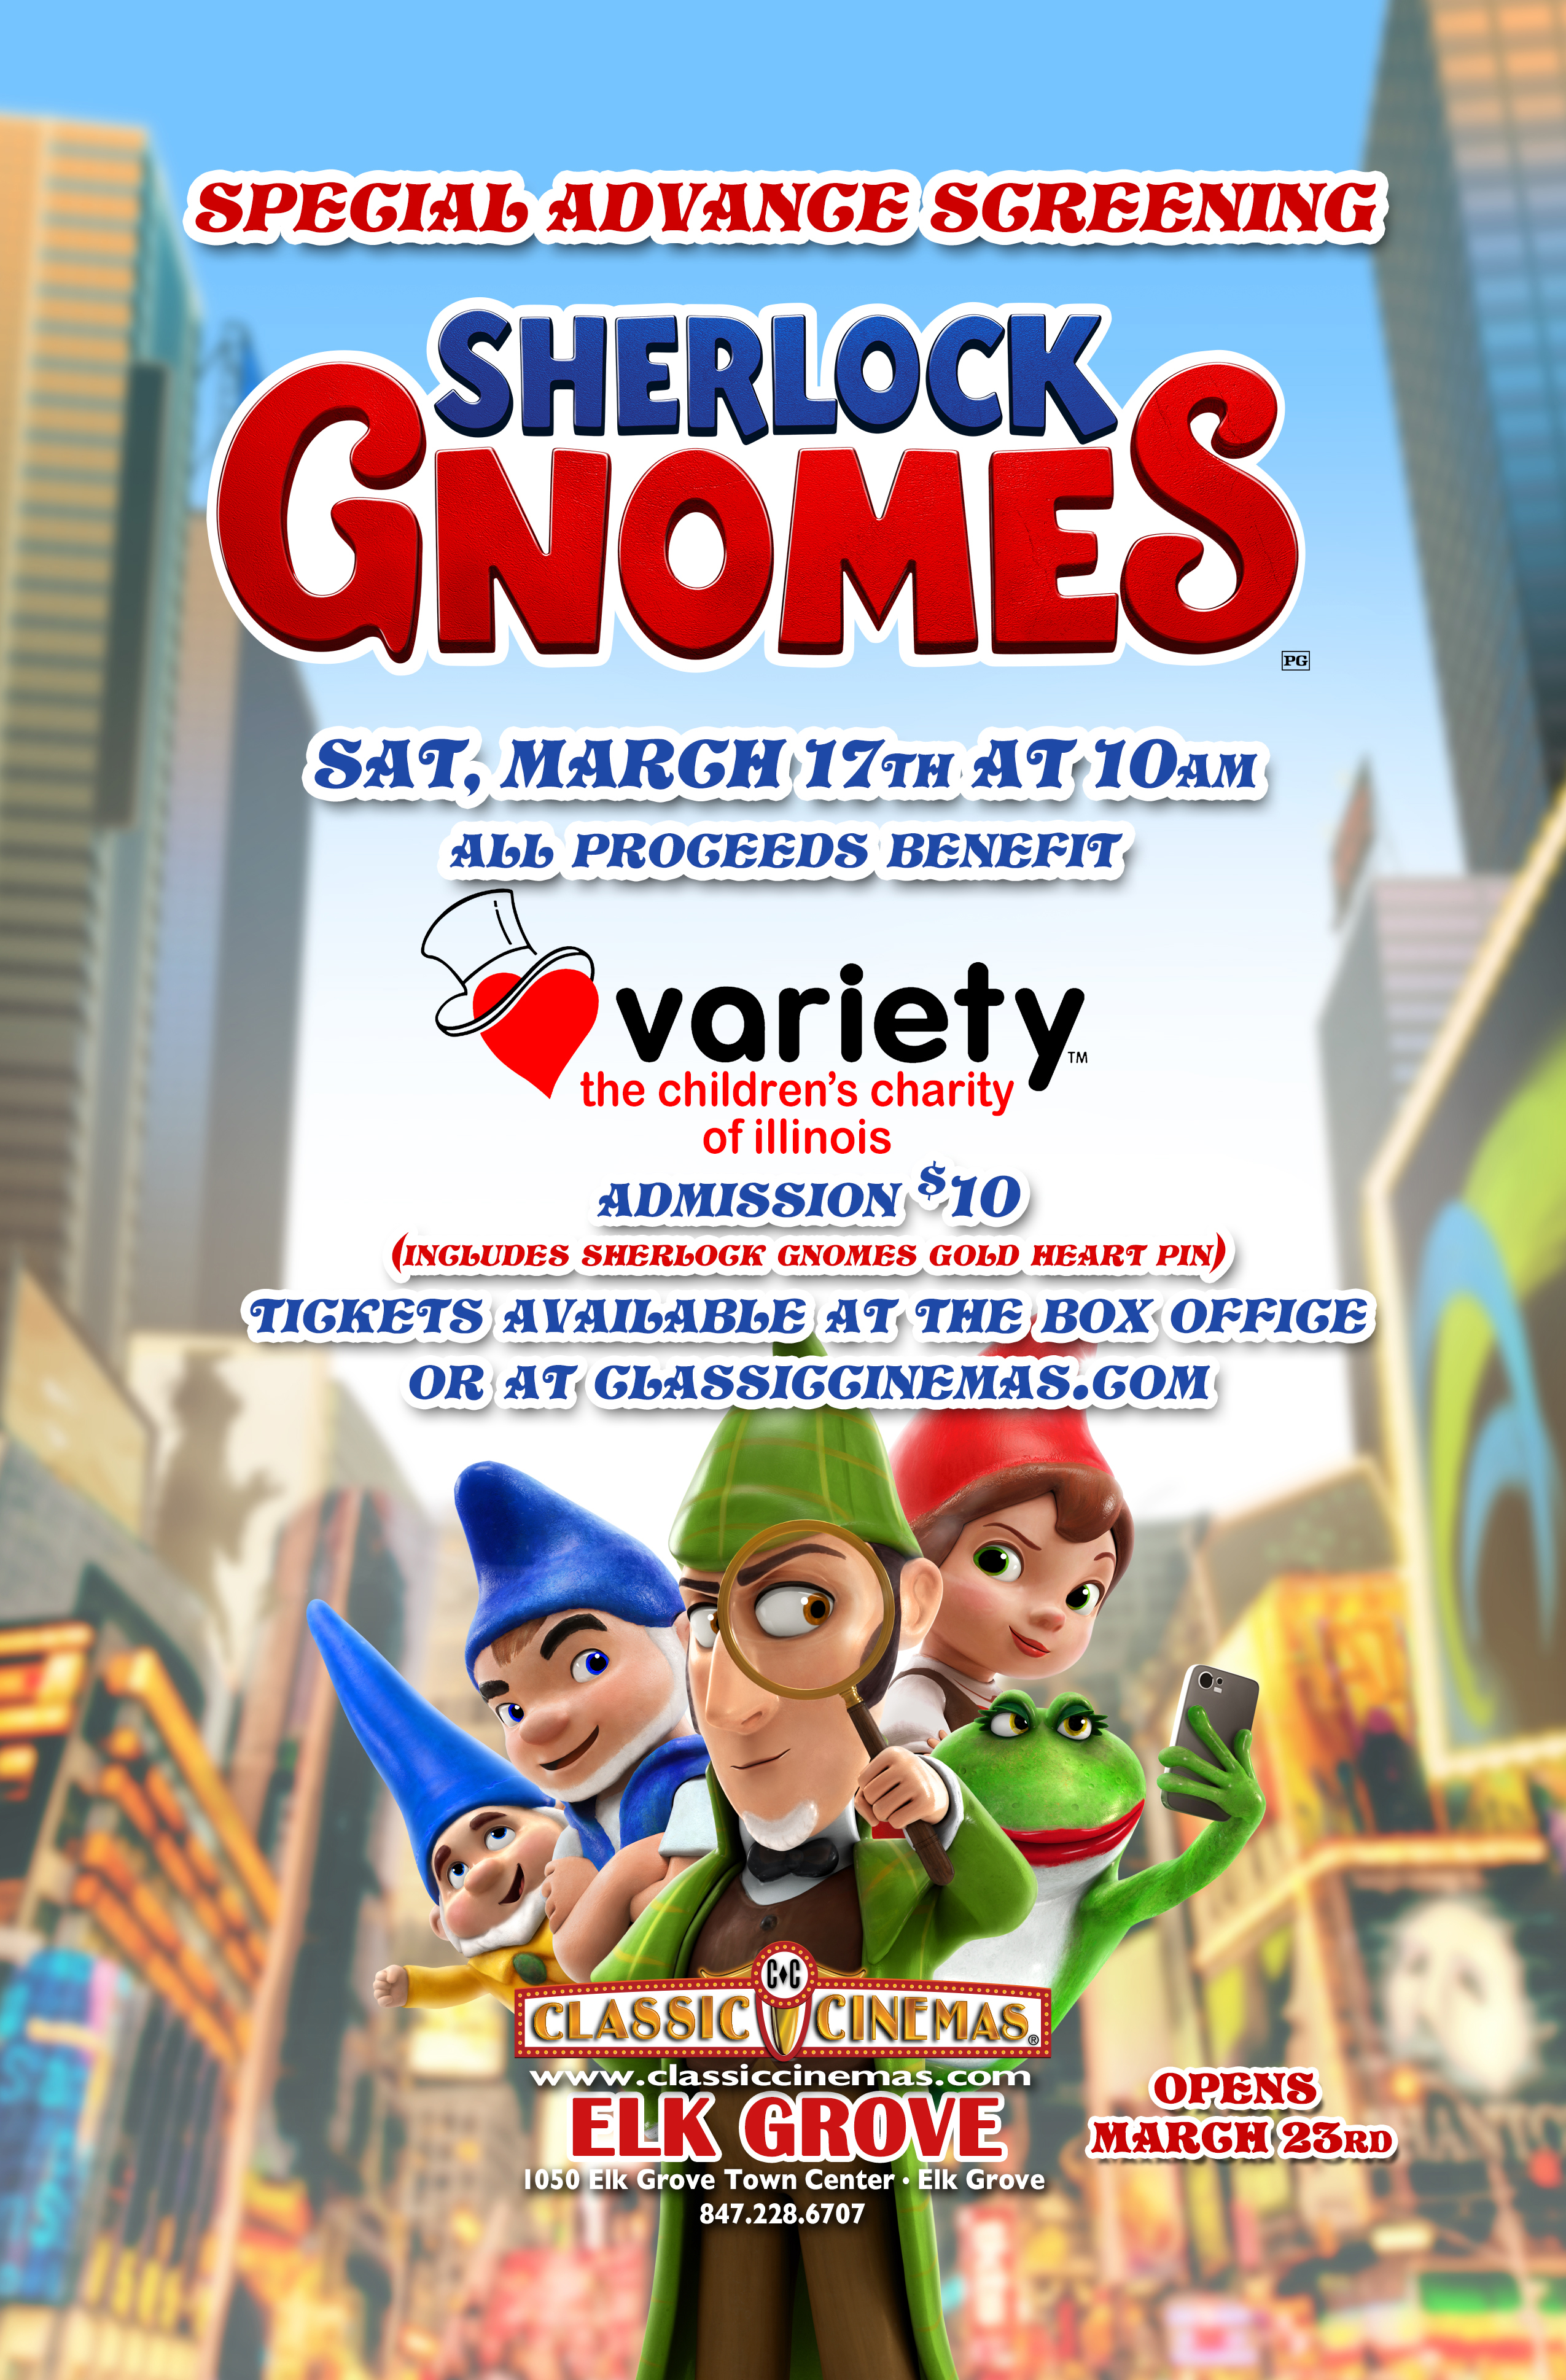 Sherlock Gnomes Screening